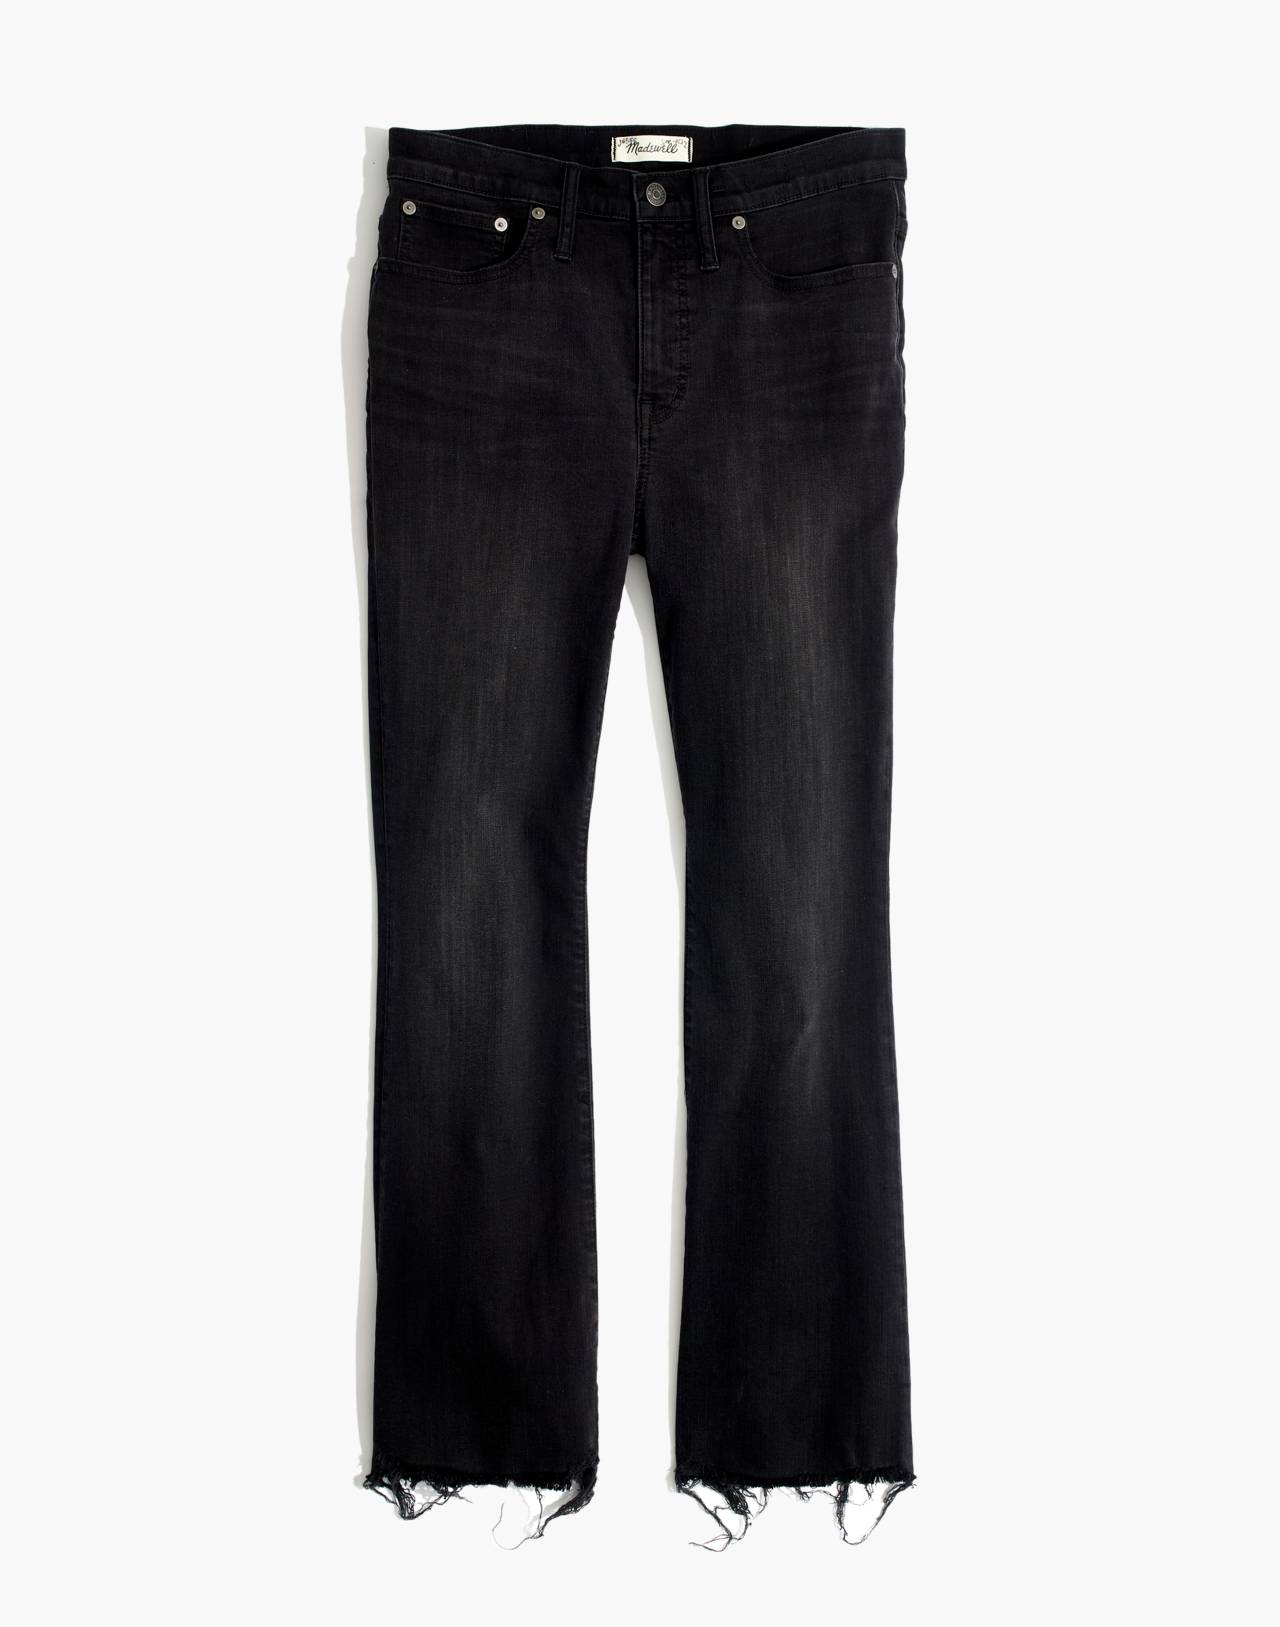 Cali Demi-Boot Jeans in Berkeley Black: Chewed-Hem Edition in berkeley wash image 4